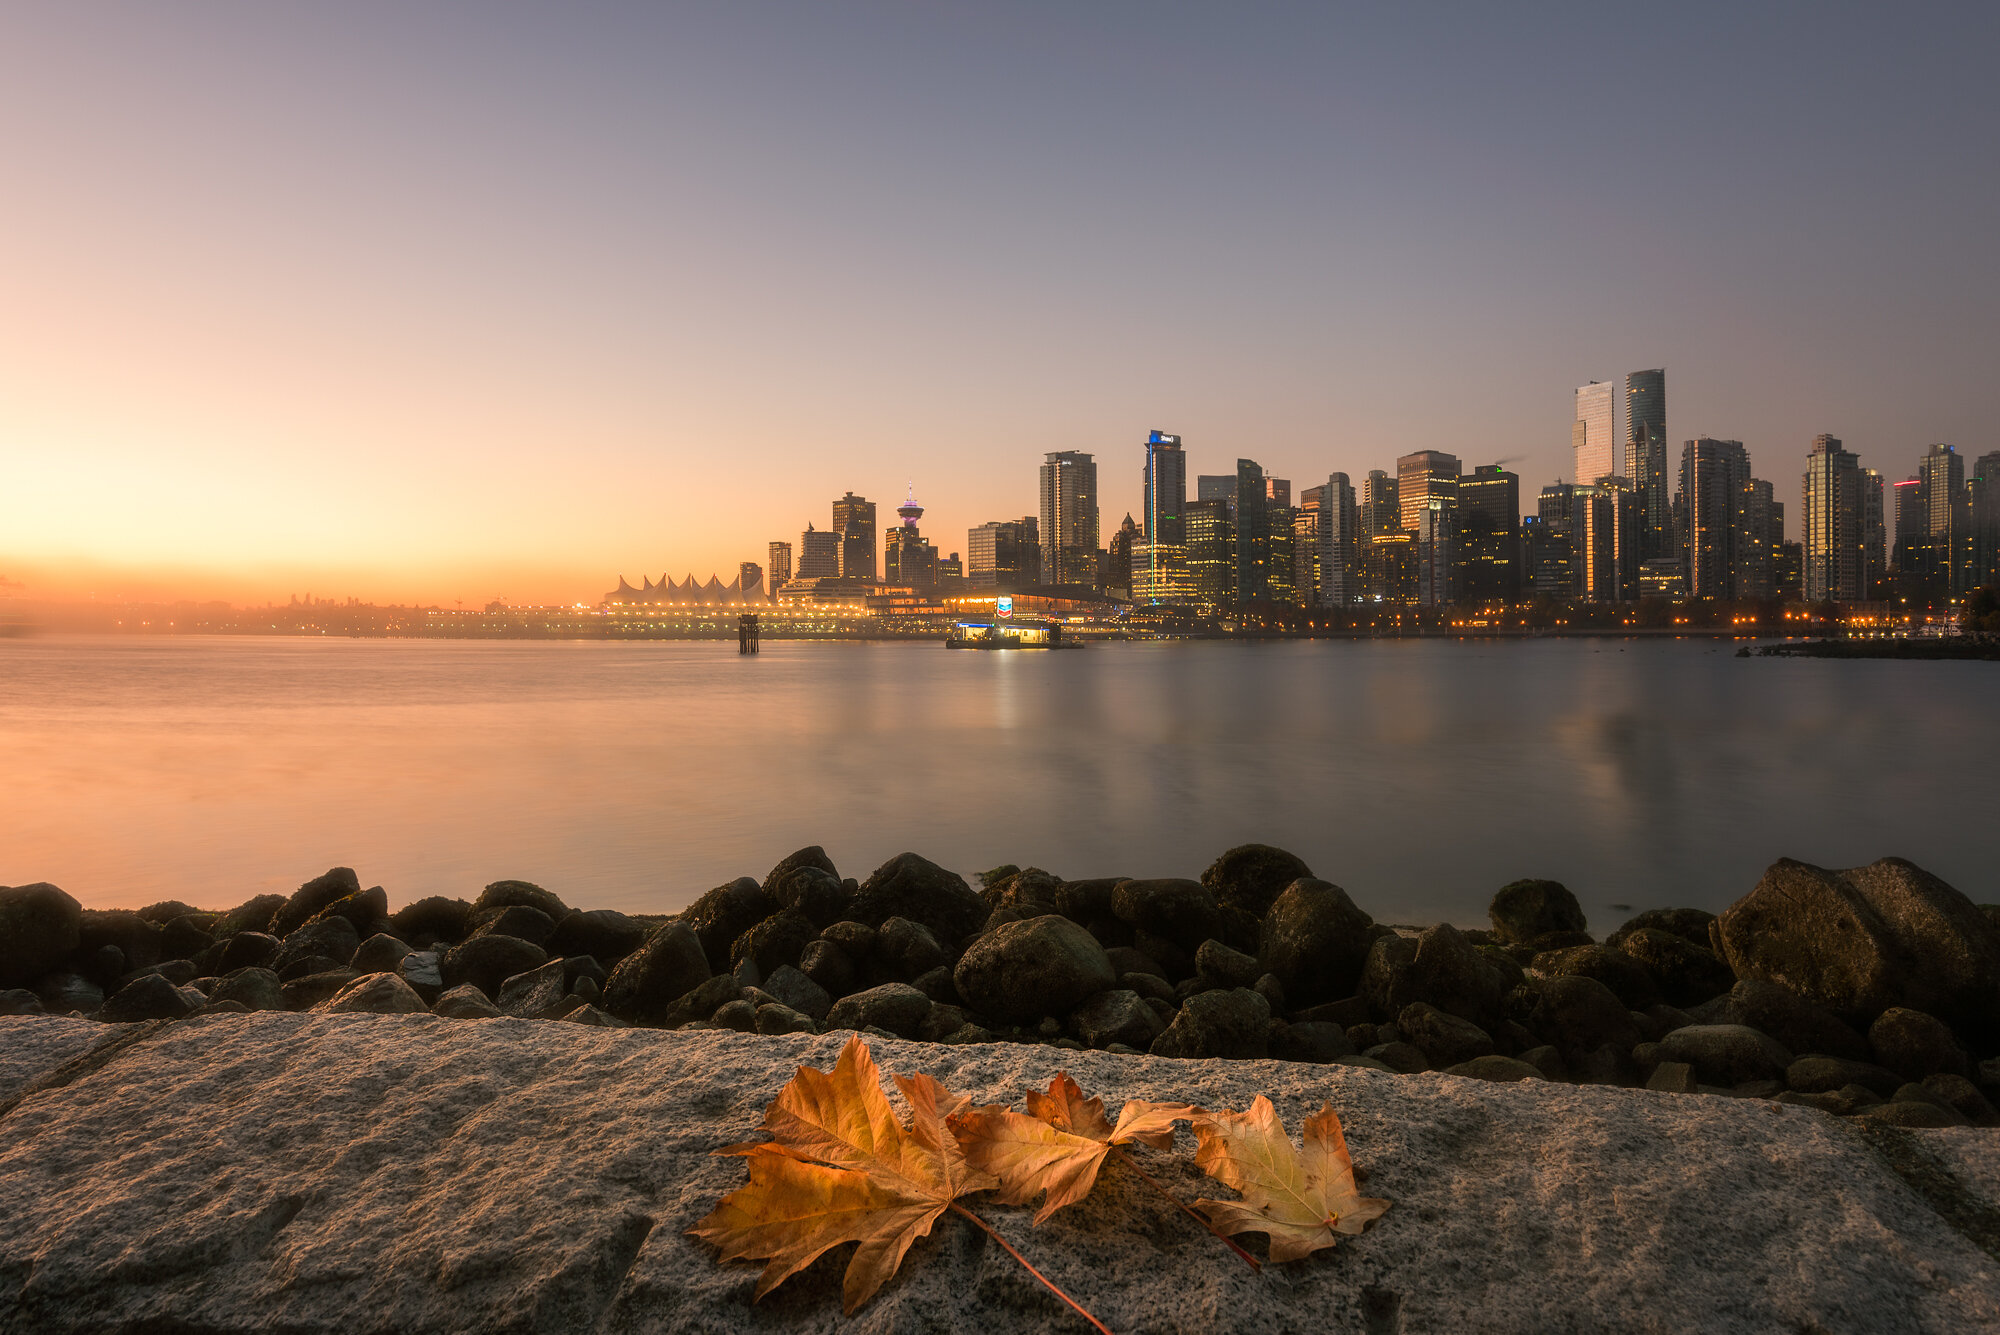 Vancouver City Photography: 'Fall in the City'